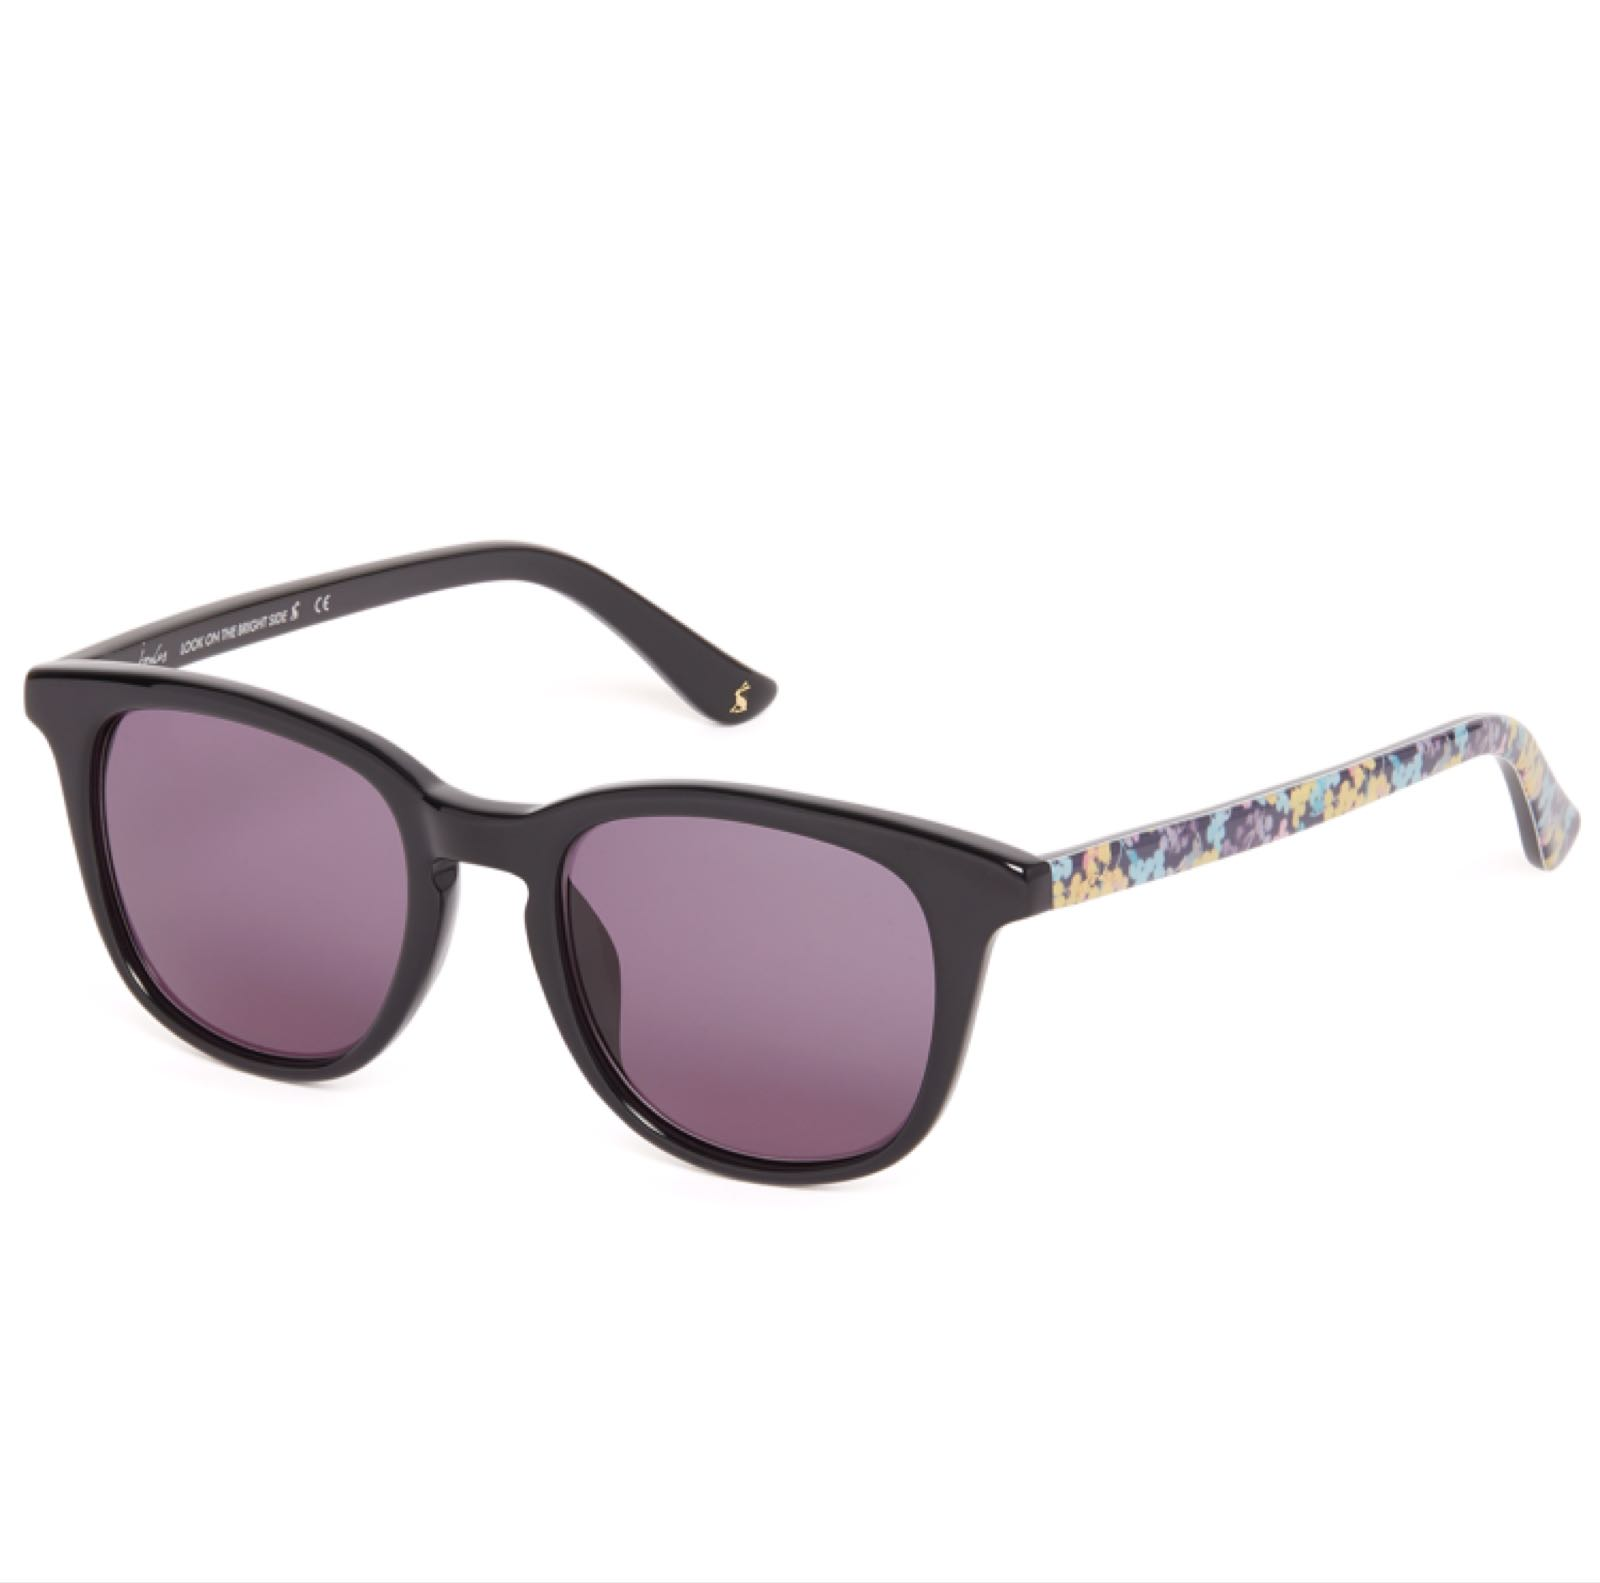 Joules black floral sunglasses was £75